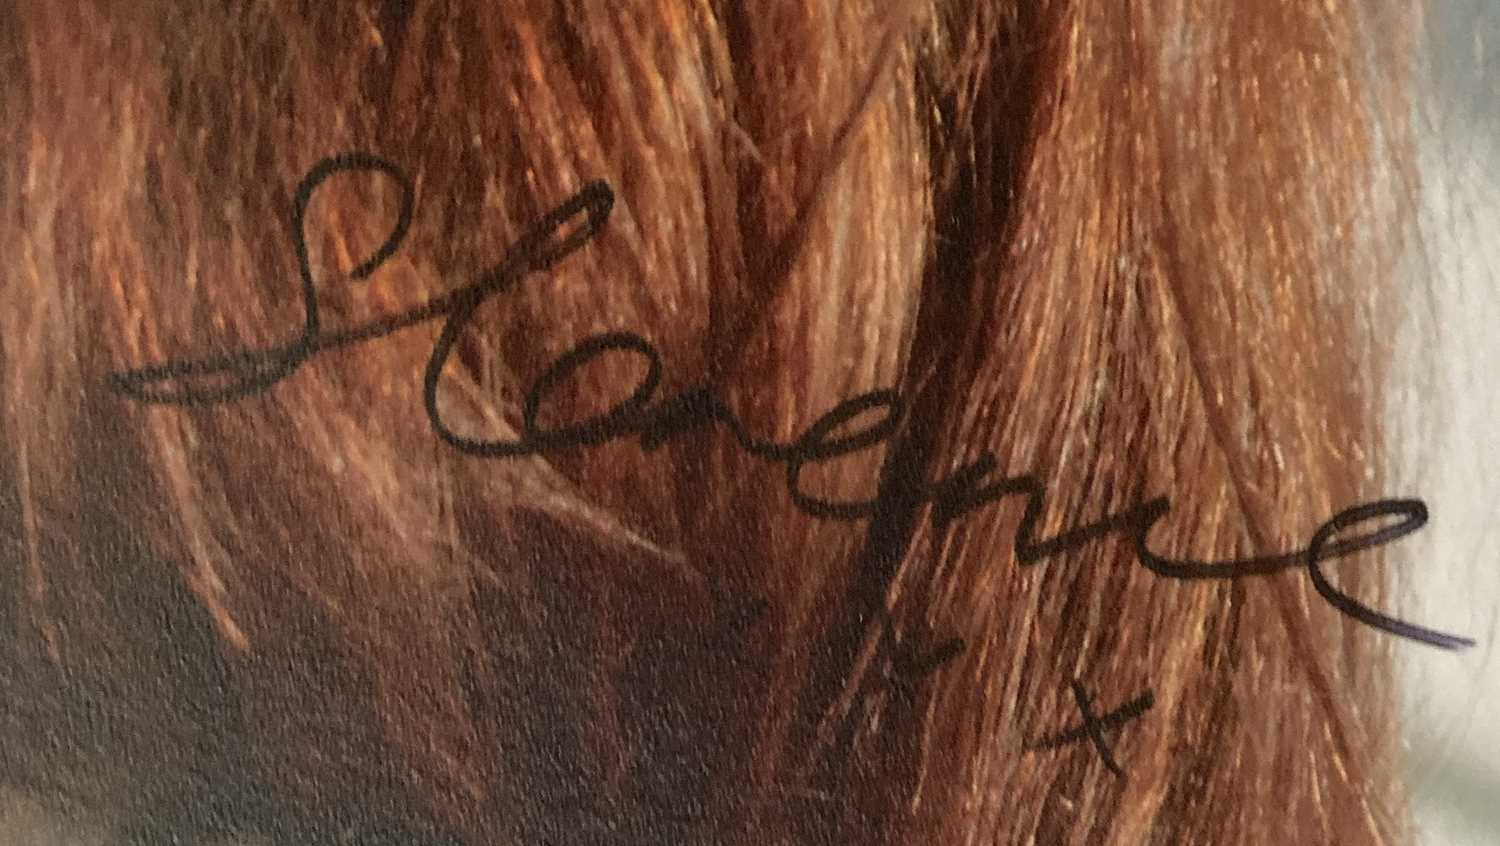 FLORENCE AND THE MACHINE SIGNED ITEMS. - Image 10 of 10